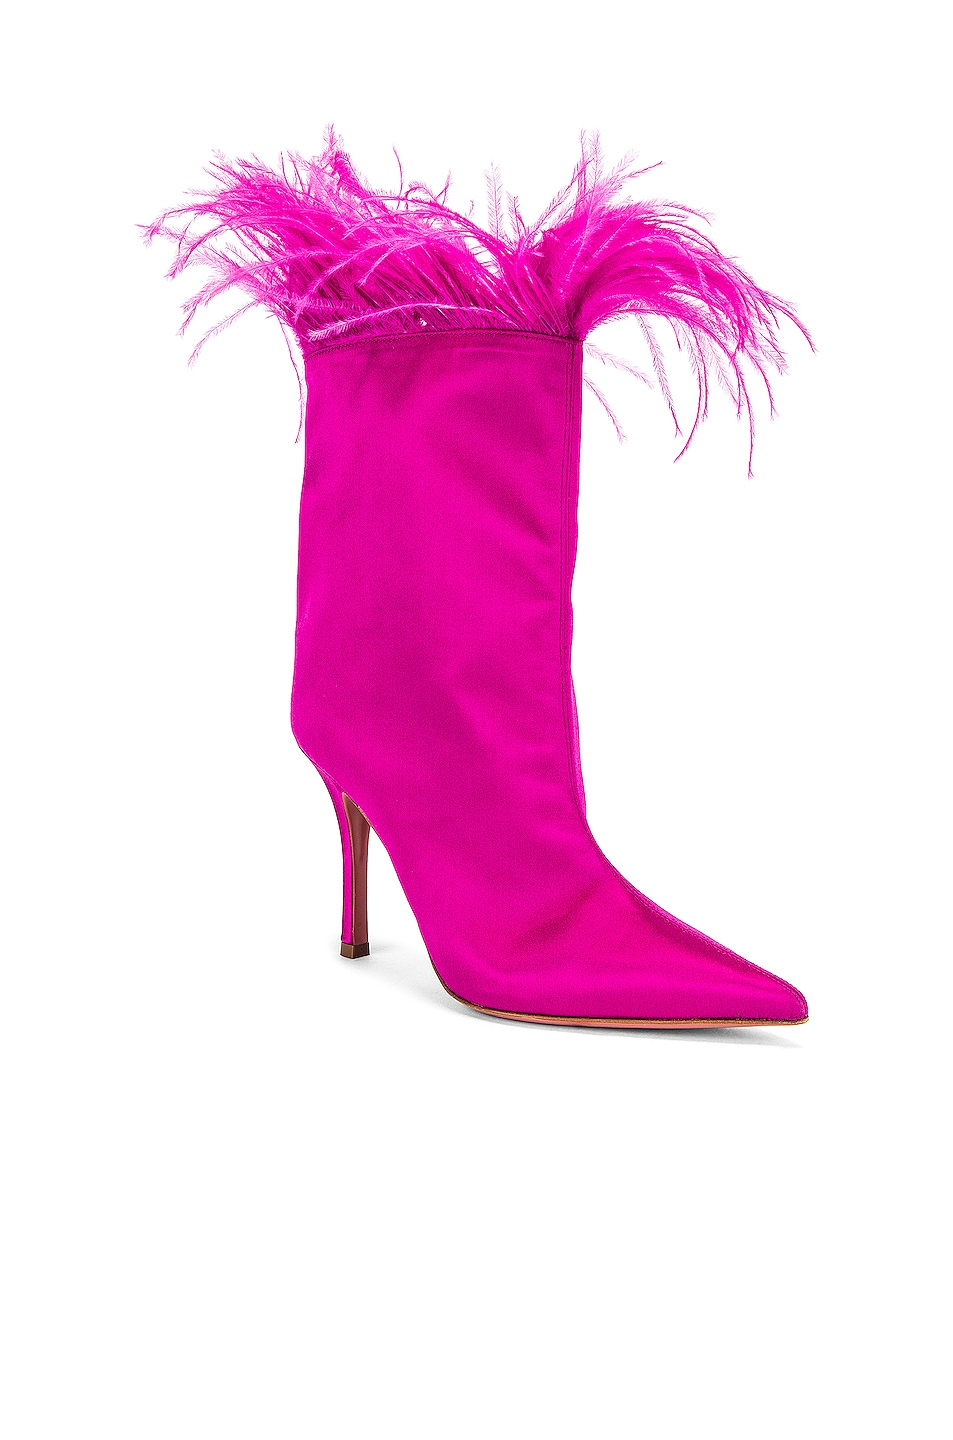 Image 2 of AMINA MUADDI Nakia Plume Satin Boot in Fuchsia Satin